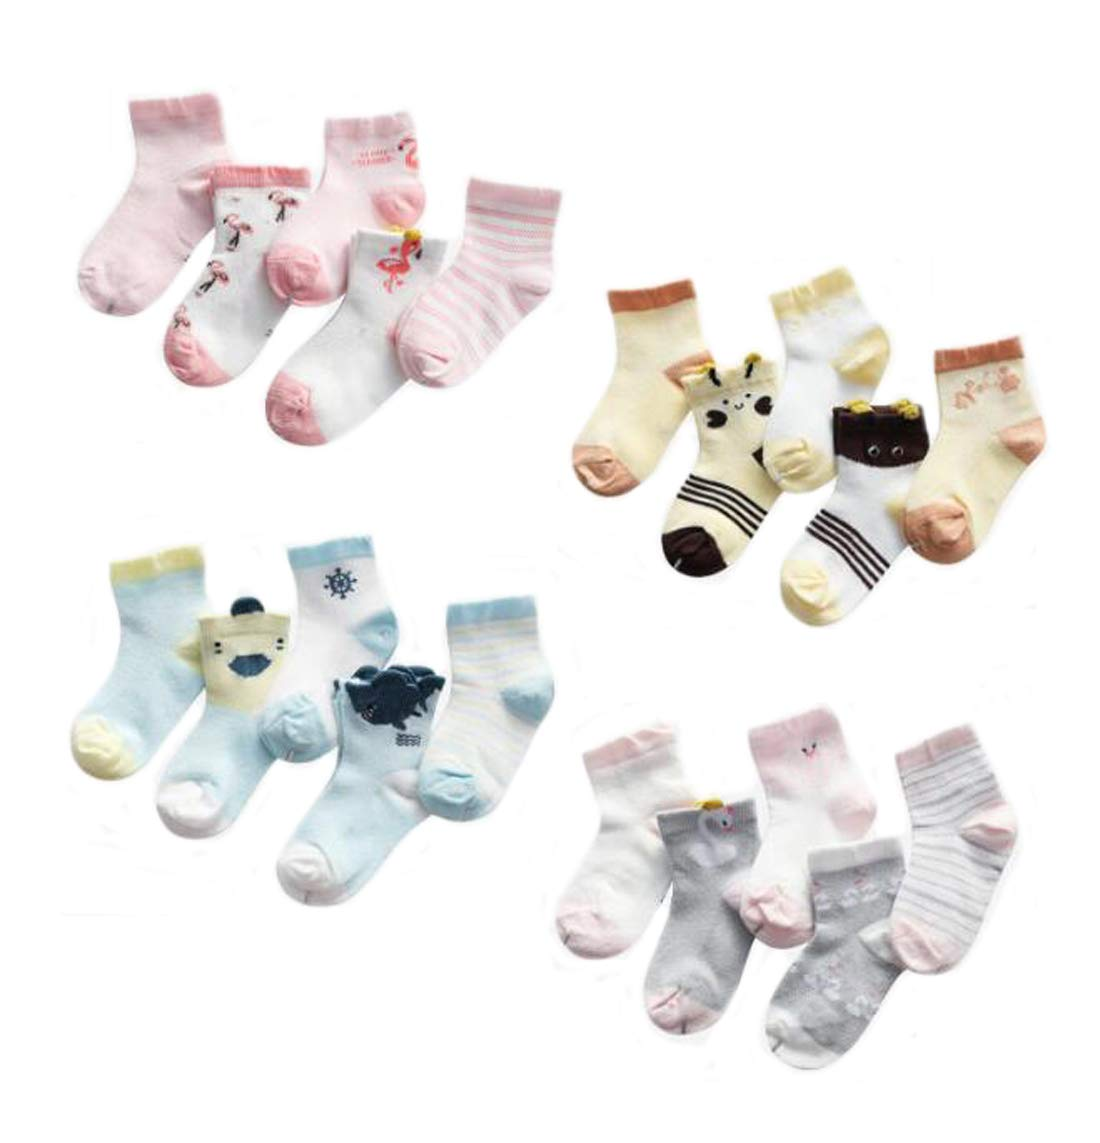 EWANDA STORE 5 Pairs Cartoon Cotton Socks Kids Baby Boys Girls Infant Toddler Socks,Little Bee,3-5 Years Old